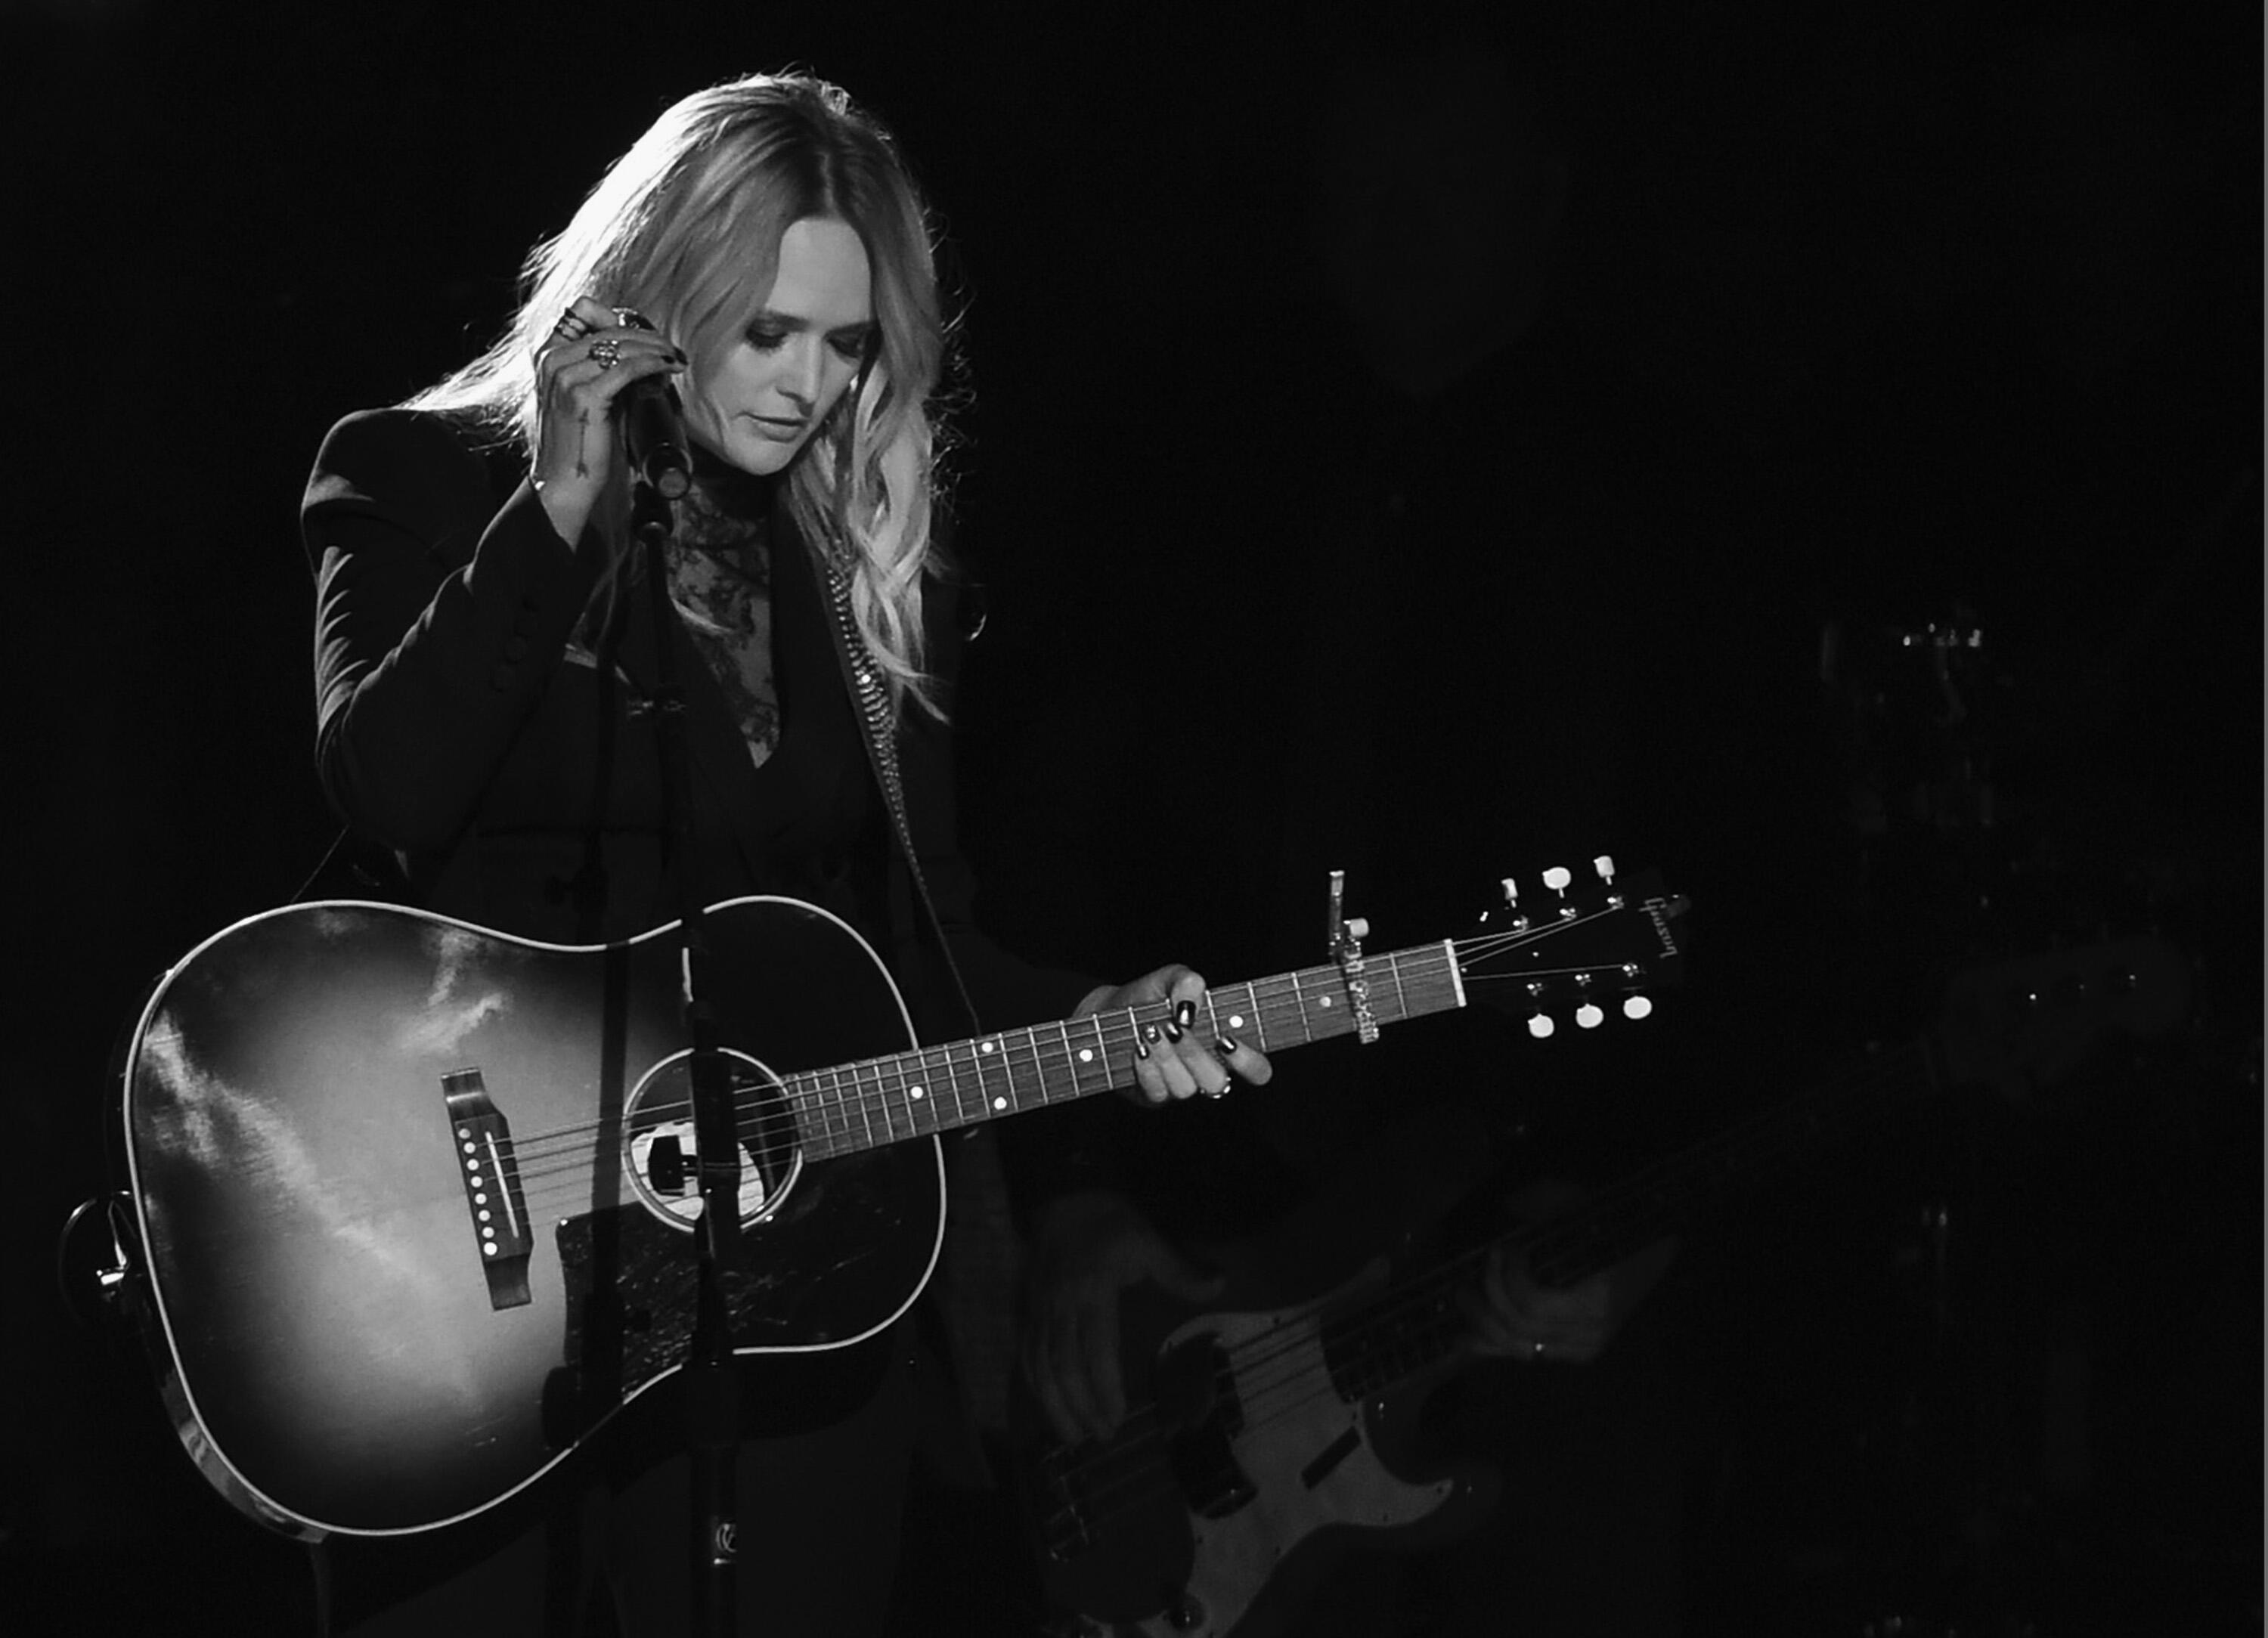 NASHVILLE, TN - NOVEMBER 02: (EDITORS NOTE: Image has been converted to black and white) Miranda Lambert performs during the 50th annual CMA Awards at the Bridgestone Arena on November 2, 2016 in Nashville, Tennessee.  (Photo by Rick Diamond/Getty Images)